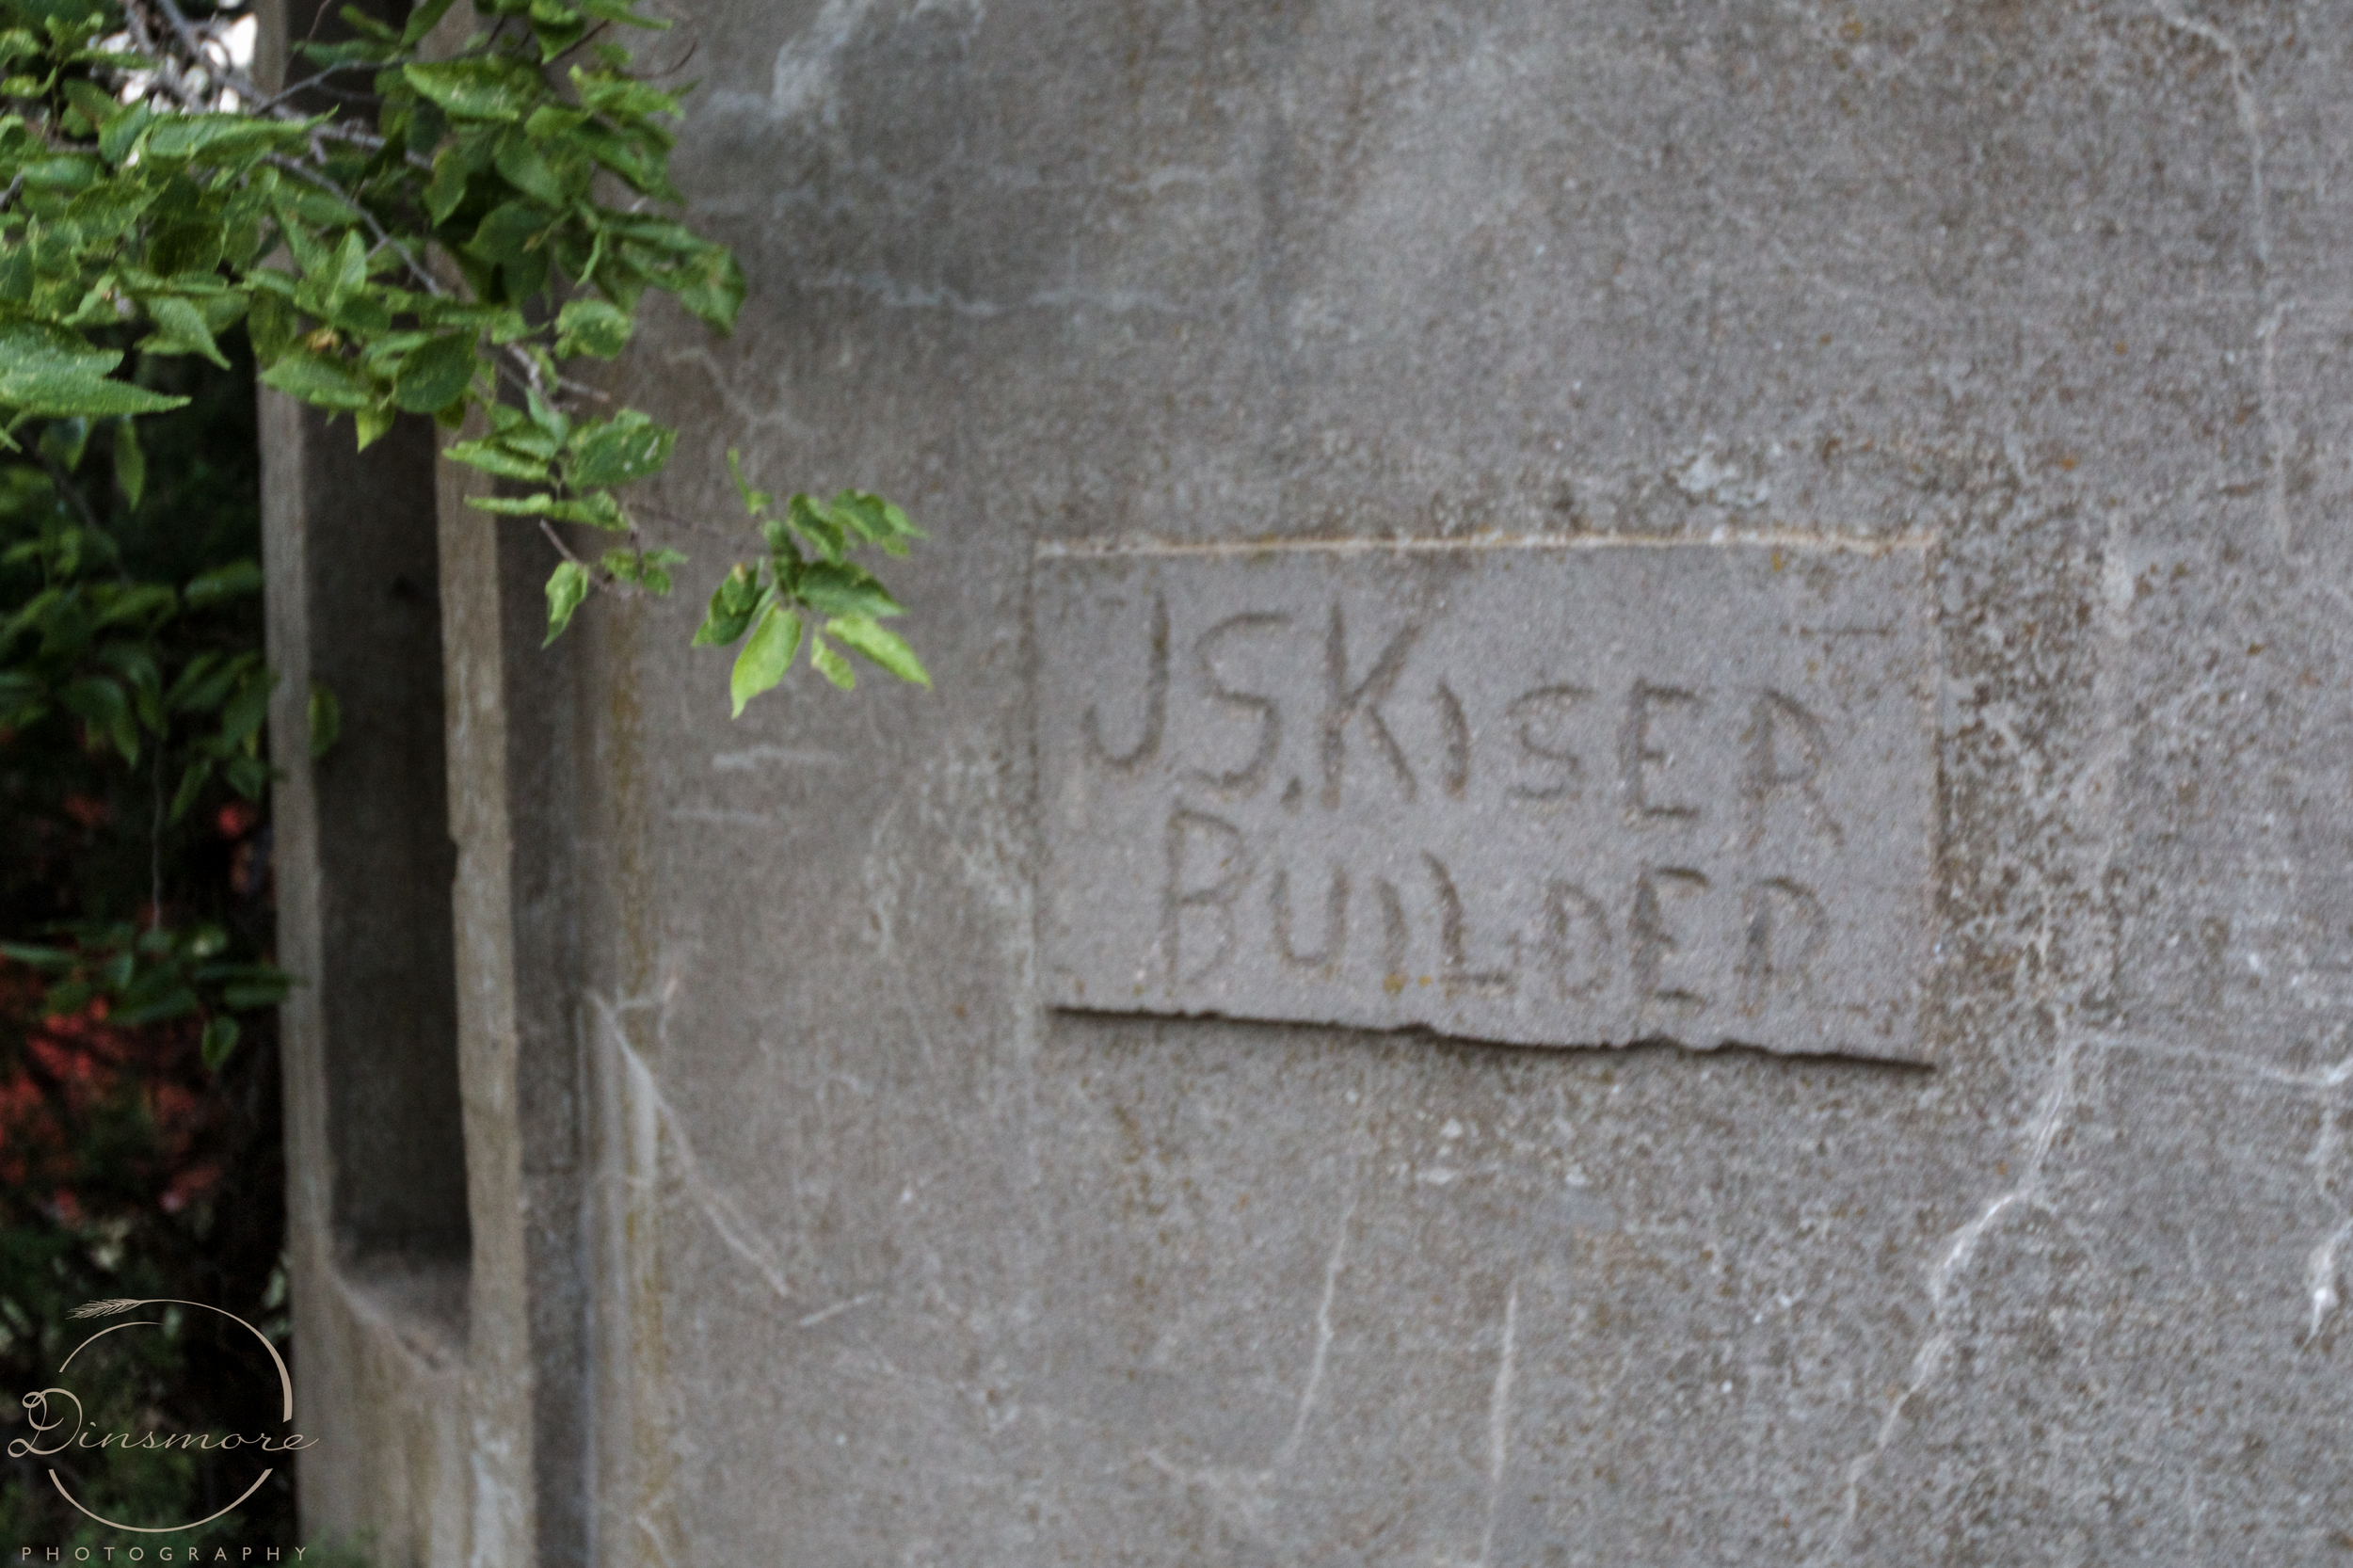 J.S. Kiser - Builder of Silos in the 1900's